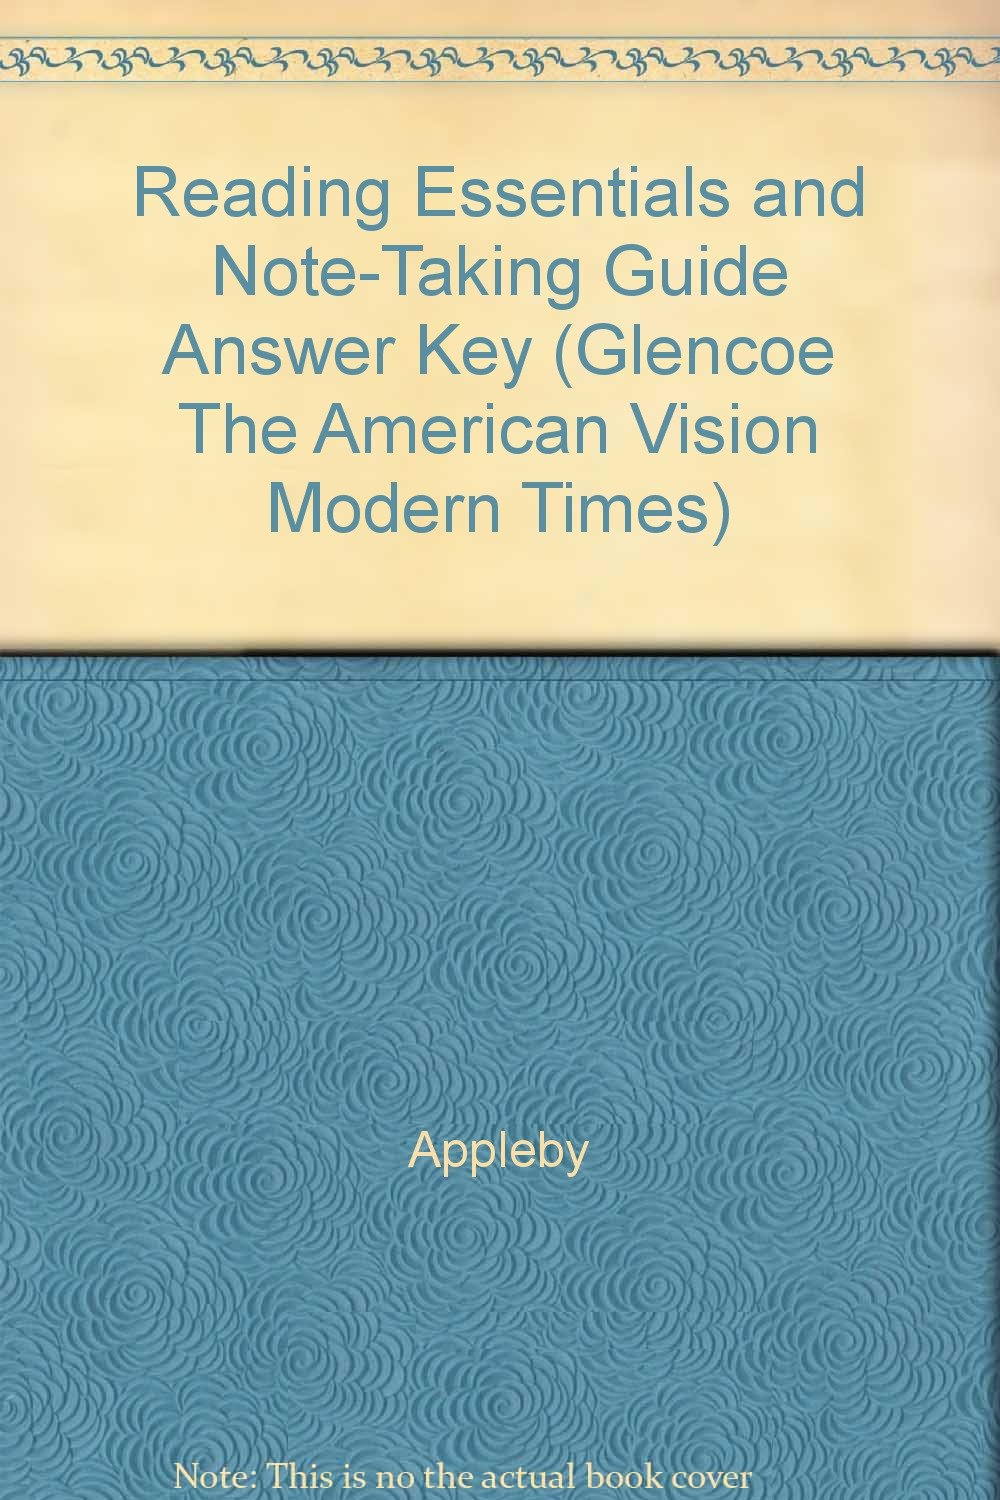 Reading Essentials and Note-Taking Guide Answer Key (Glencoe The American  Vision Modern Times): Appleby: 9780078785191: Amazon.com: Books